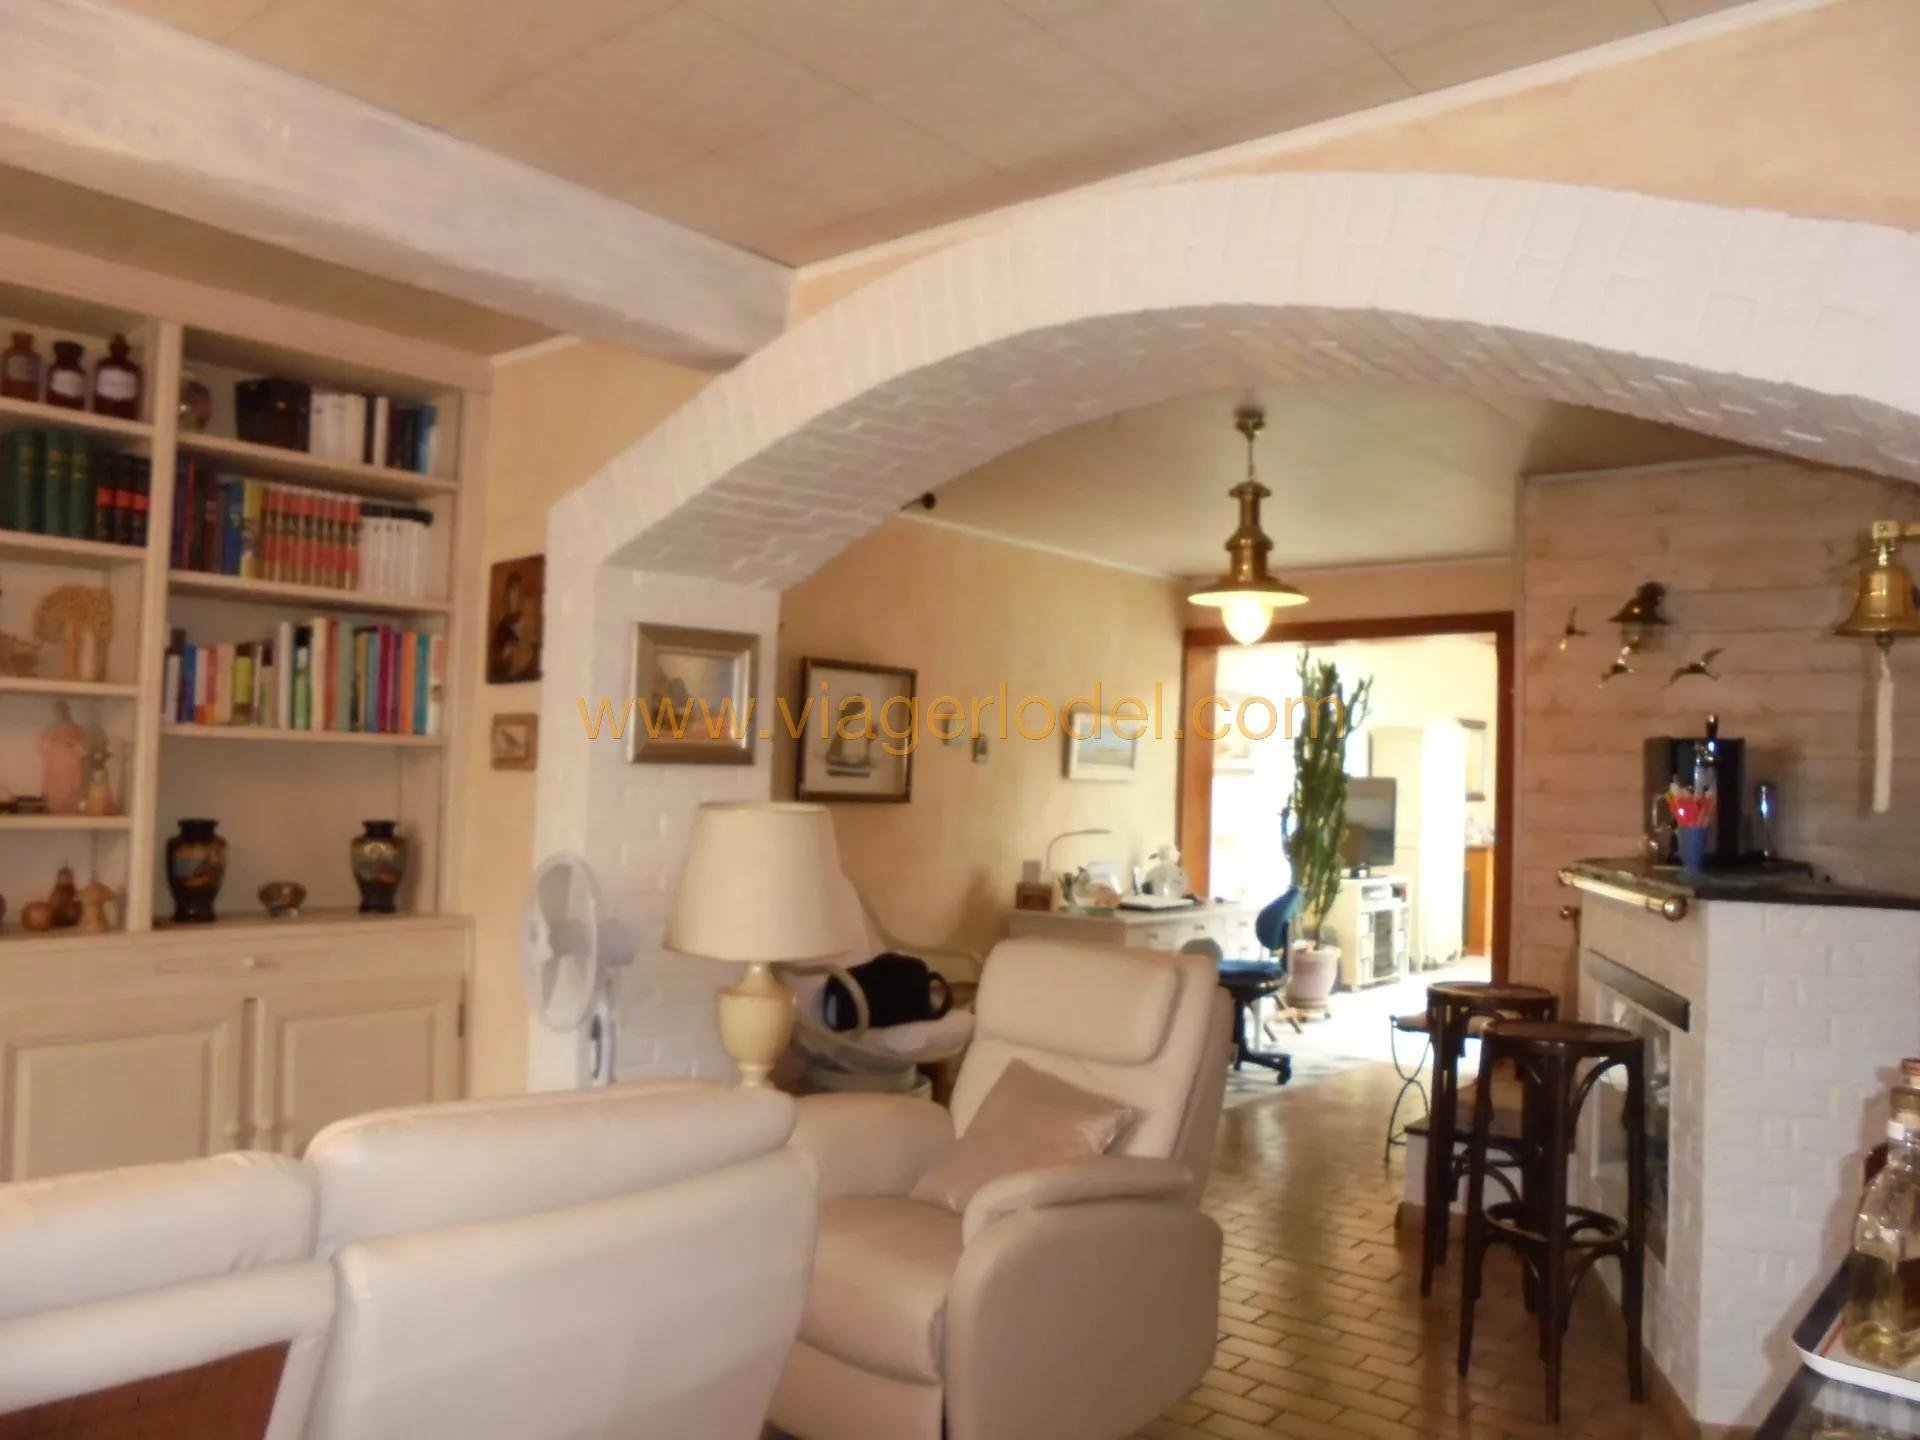 Ref. 8180 - SALE WITH RESERVE RIGHT OF USE AND HOUSING - NOEUX-LES-MINES (62)